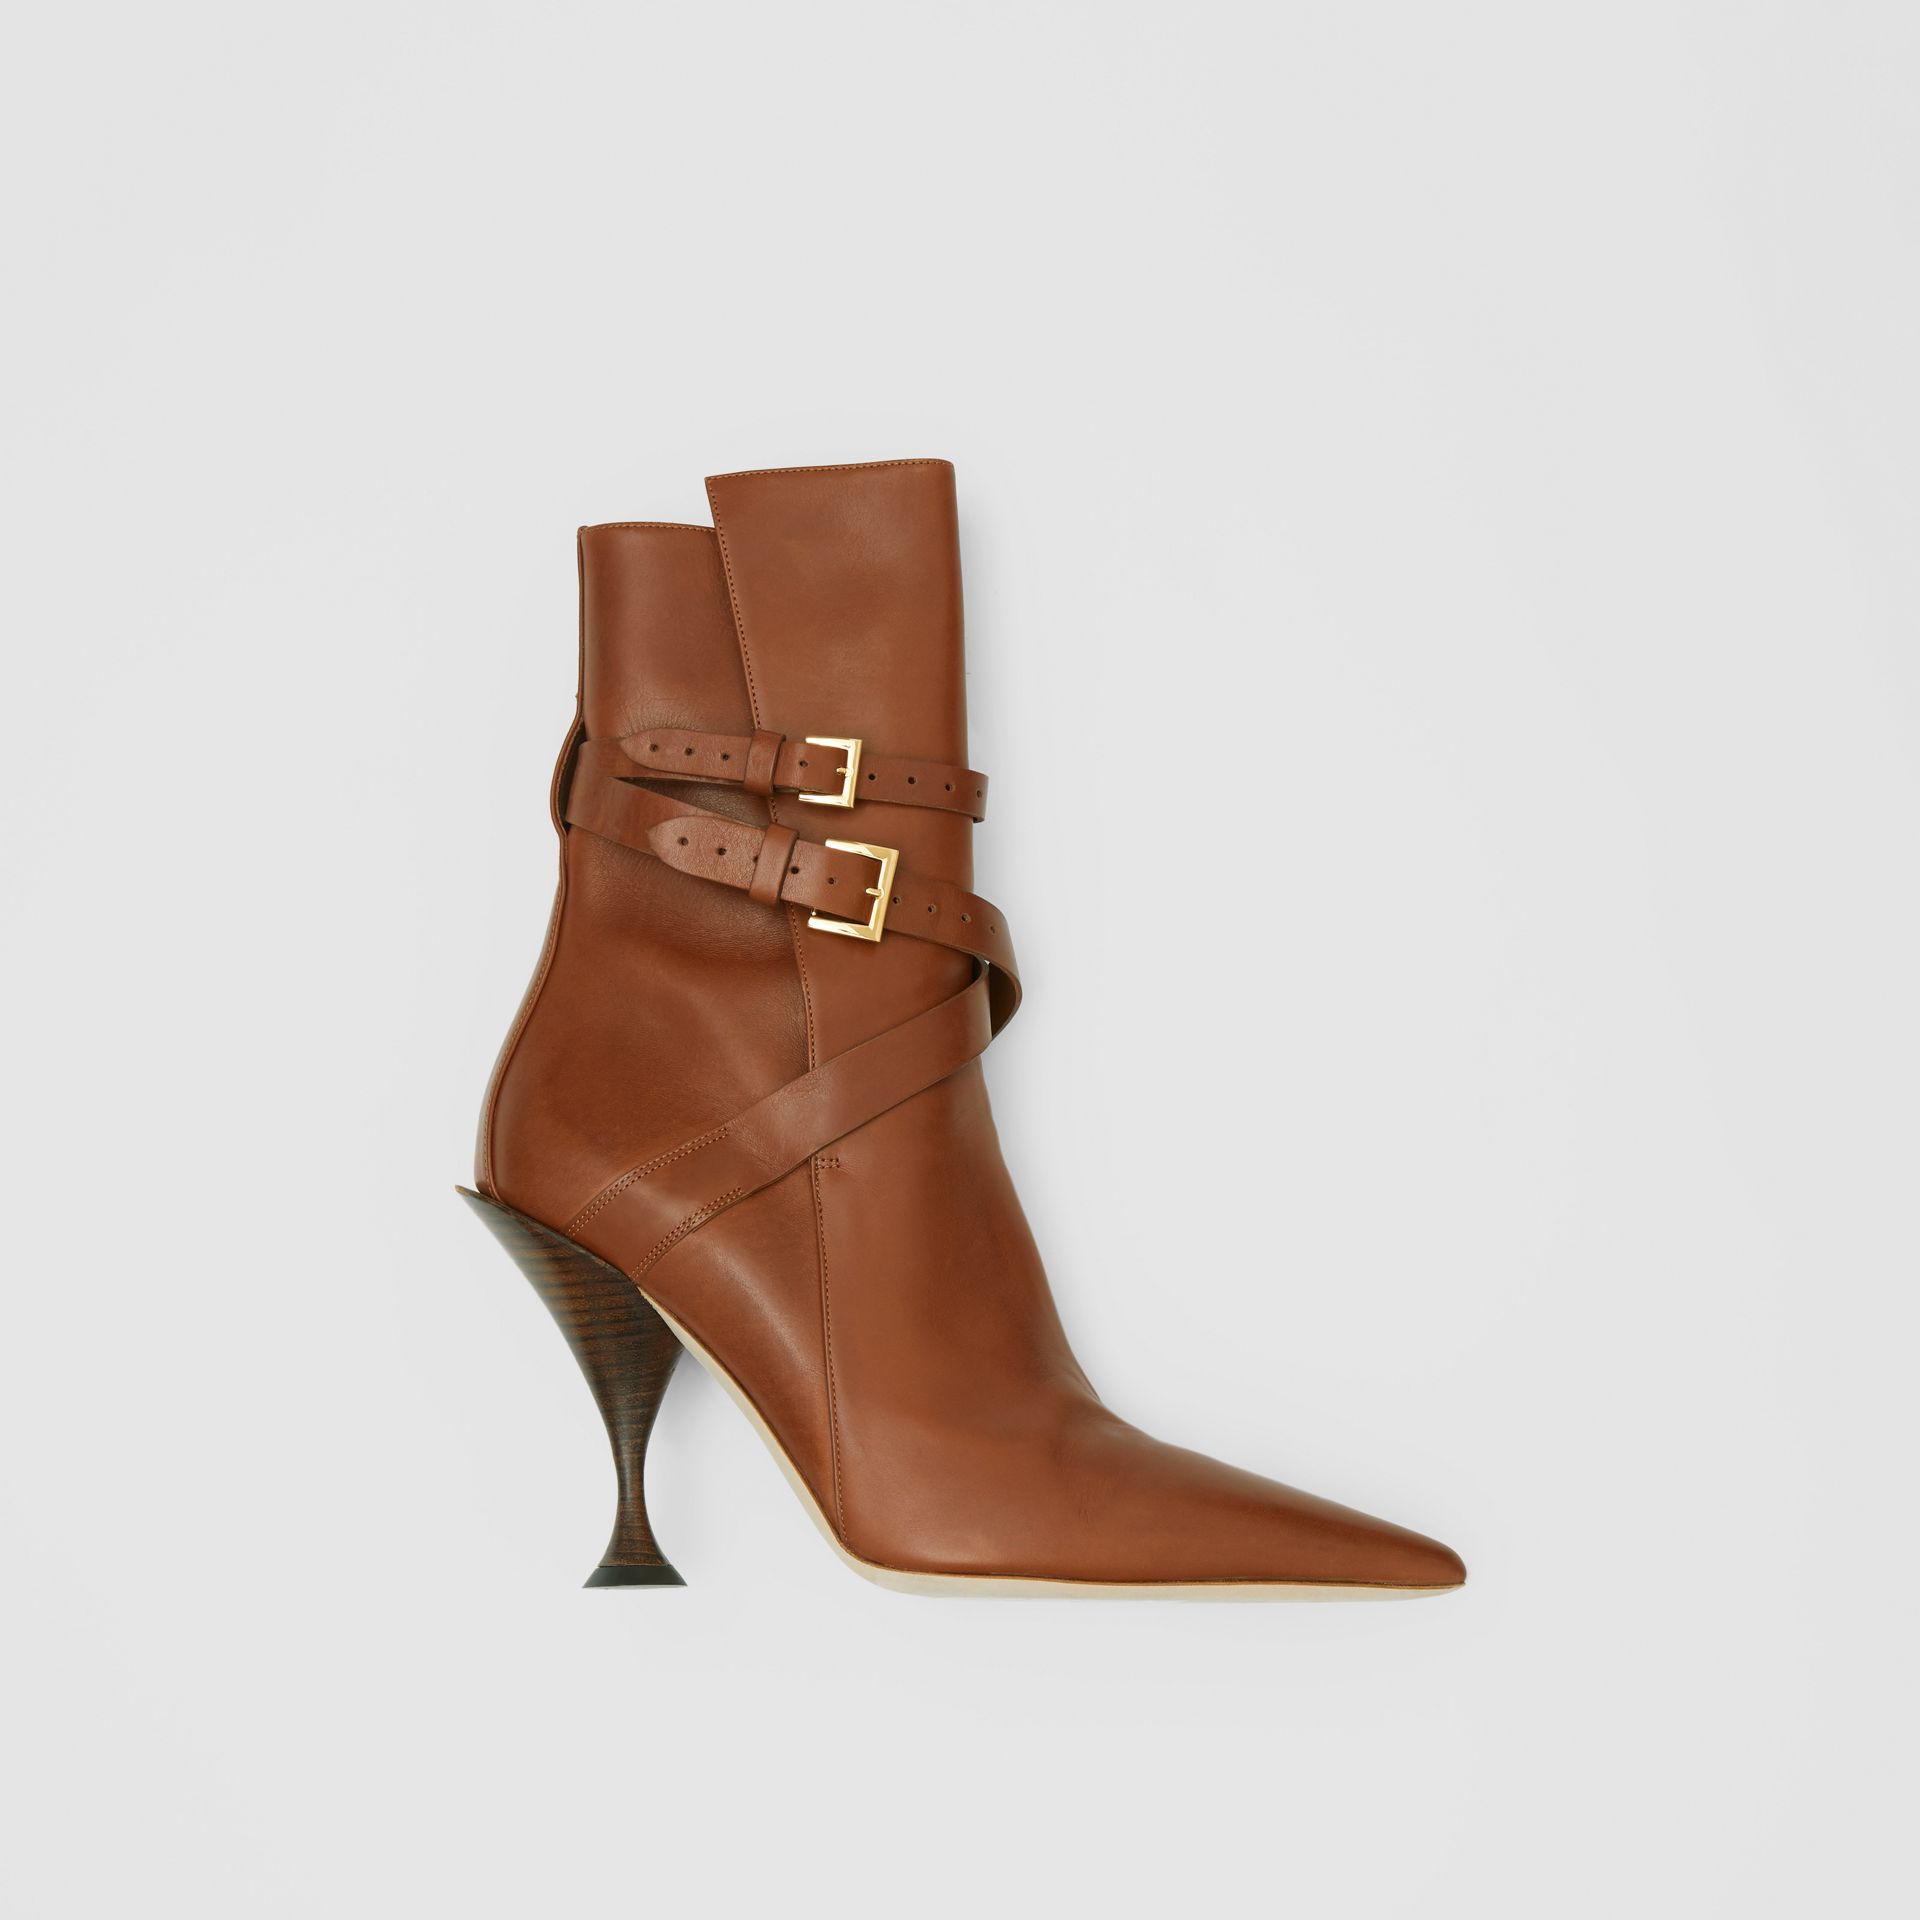 Strap Detail Leather Ankle Boots in Tan - Women | Burberry Hong Kong S.A.R - gallery image 0